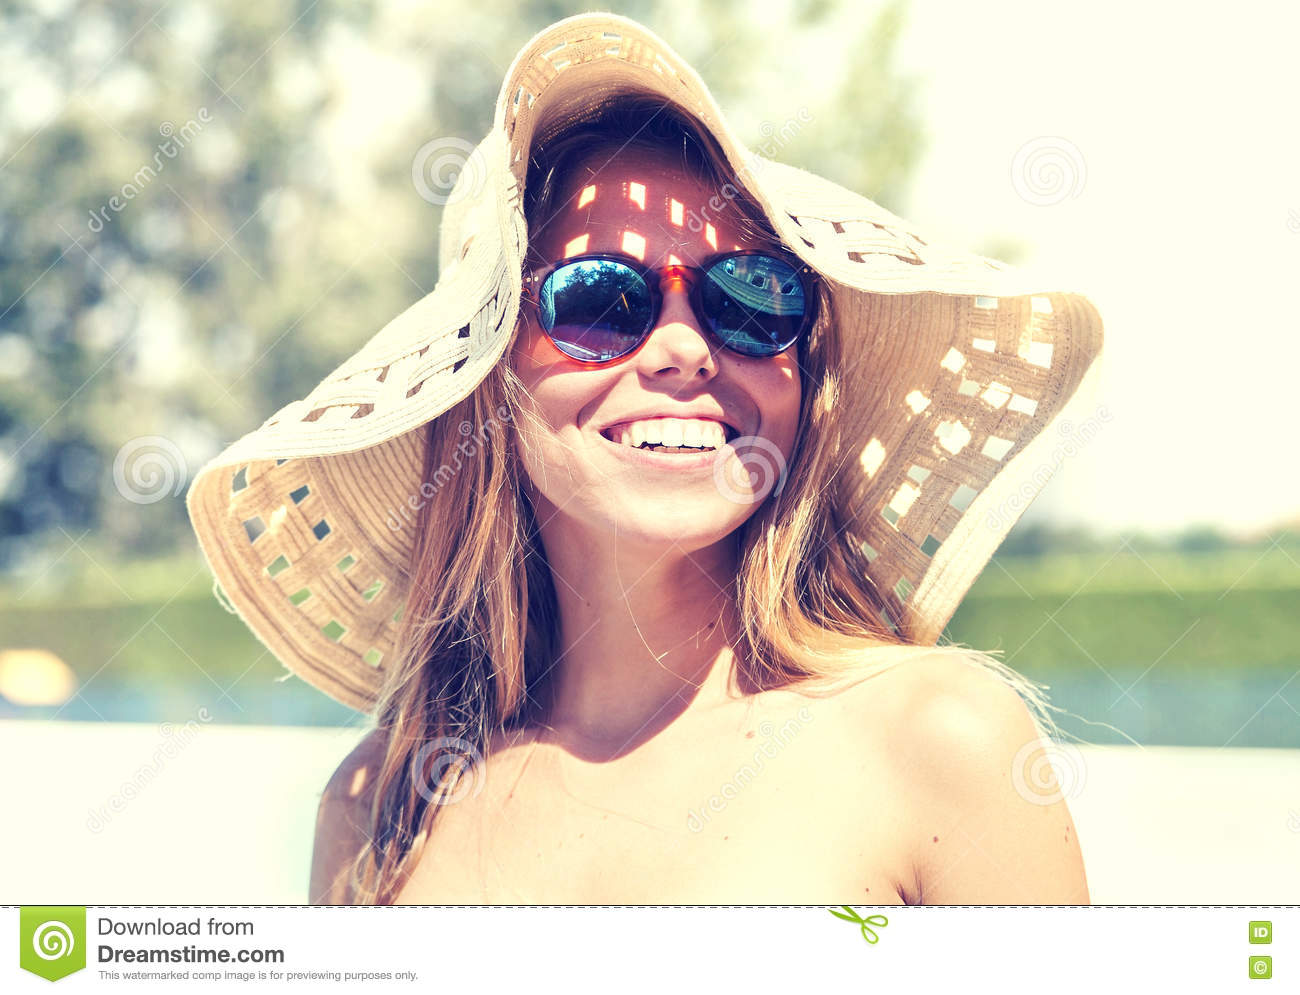 Of Hat Stock Women Young Wearing Portrait Image Smile N8n0mw